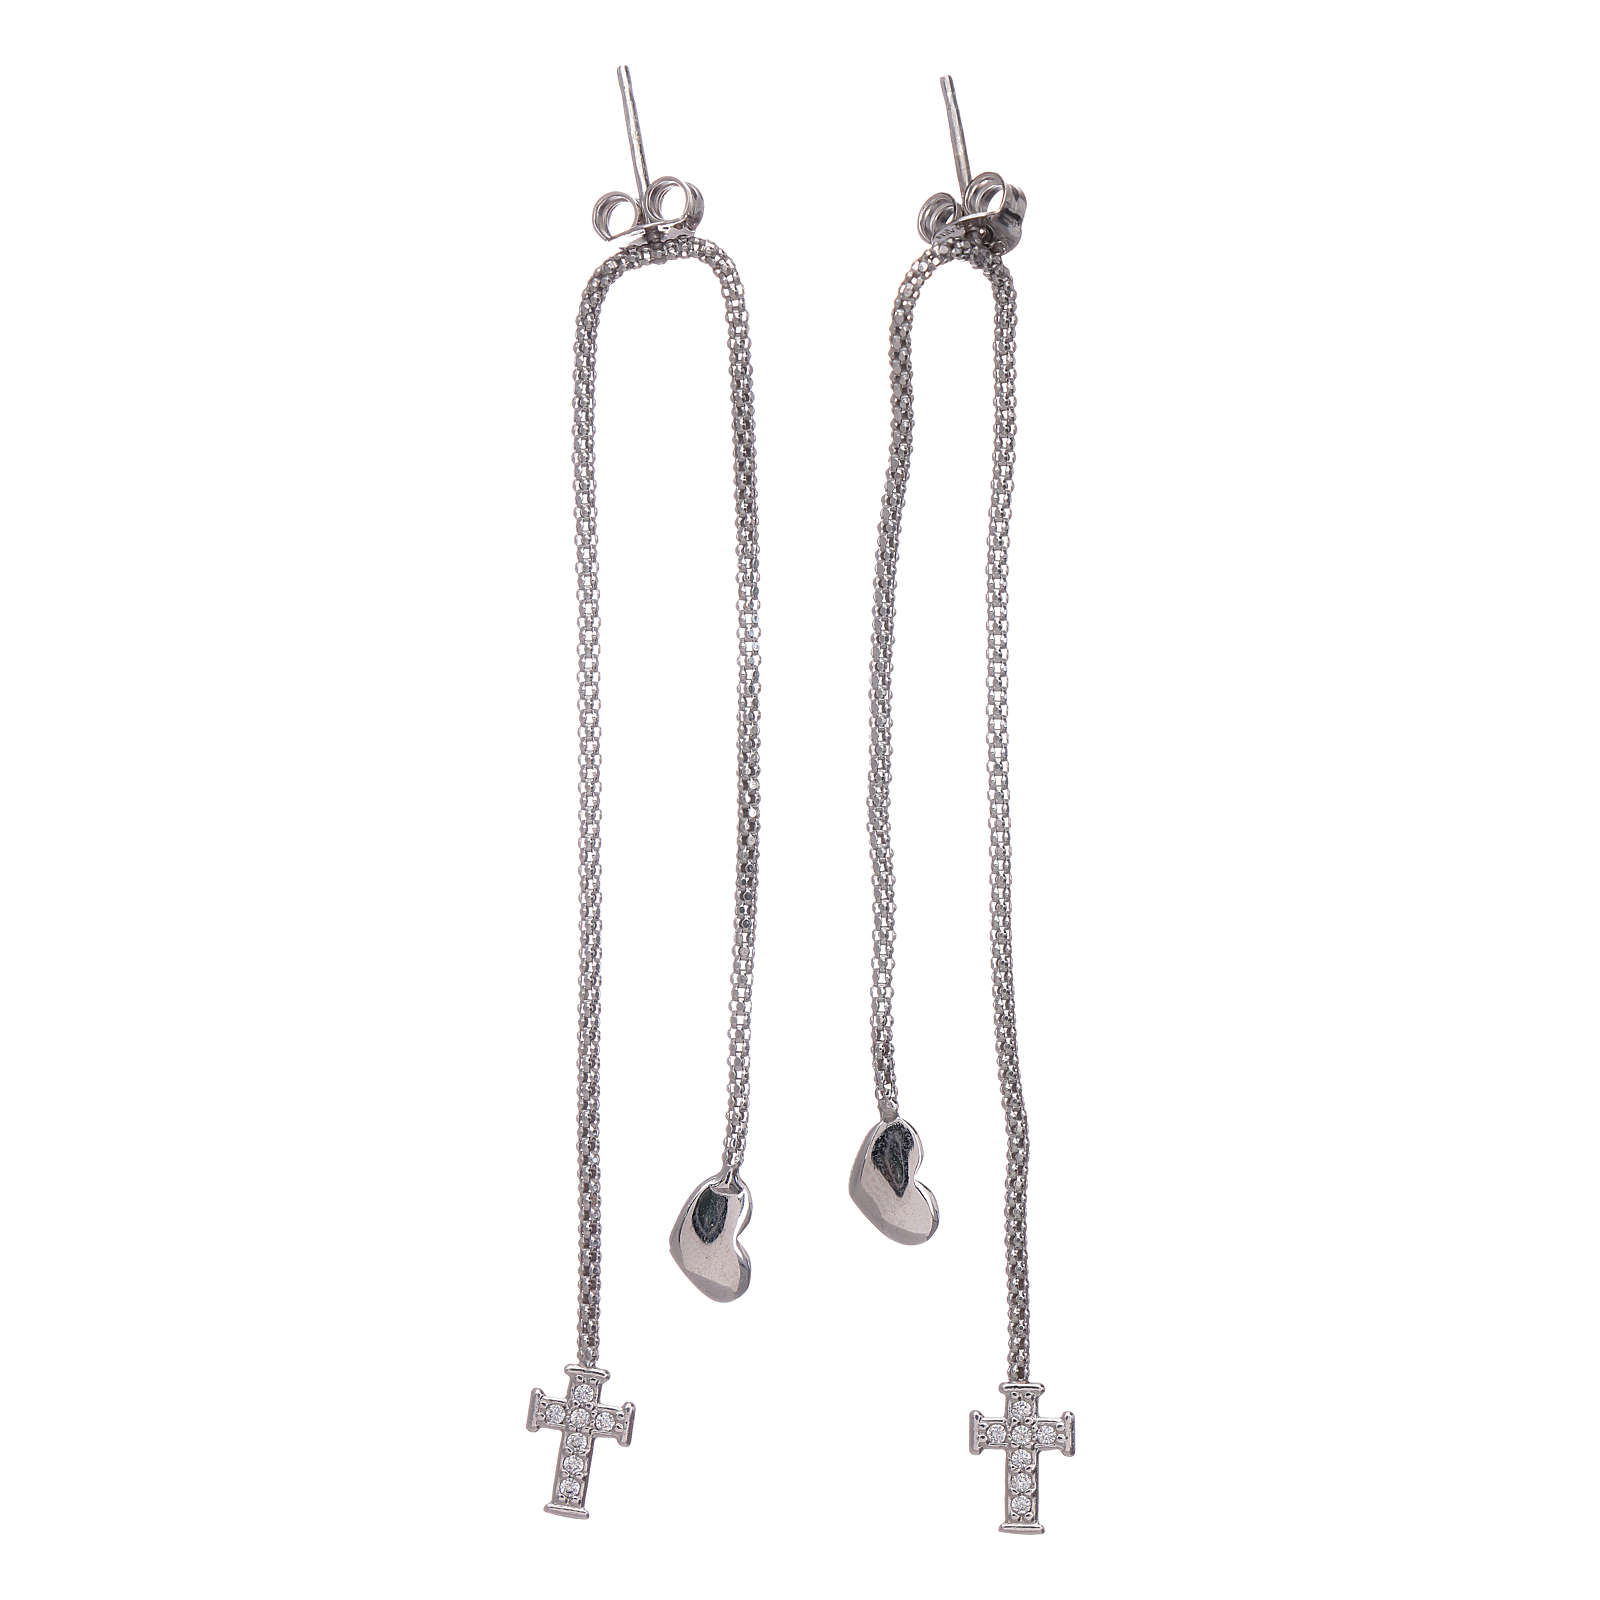 AMEN earrings hug shaped with heart and cross in 925 sterling silver finished in rhodium 4